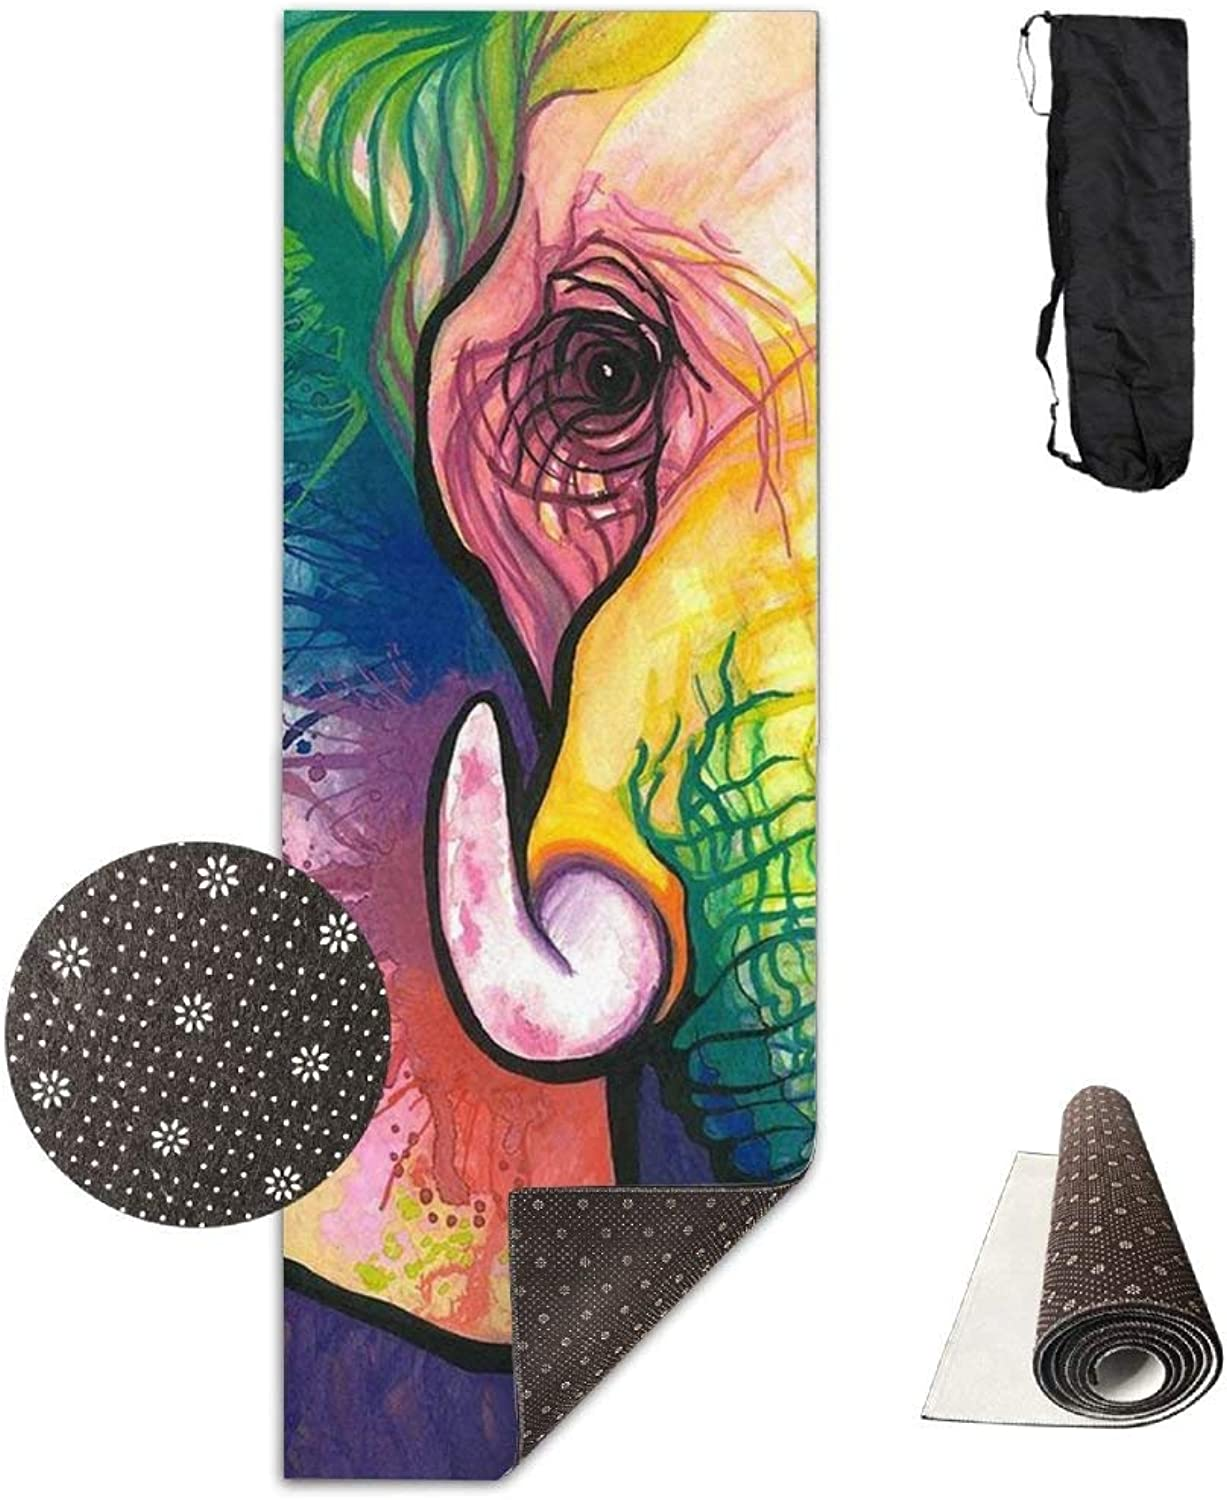 NonSlip FashionForward Watercolor Rainbow Elephant Printed Yoga Mat Aerobic Exercise Mat Pilates Mat Baby Crawling Mat with Carrying Bag Great for Man Women Baby